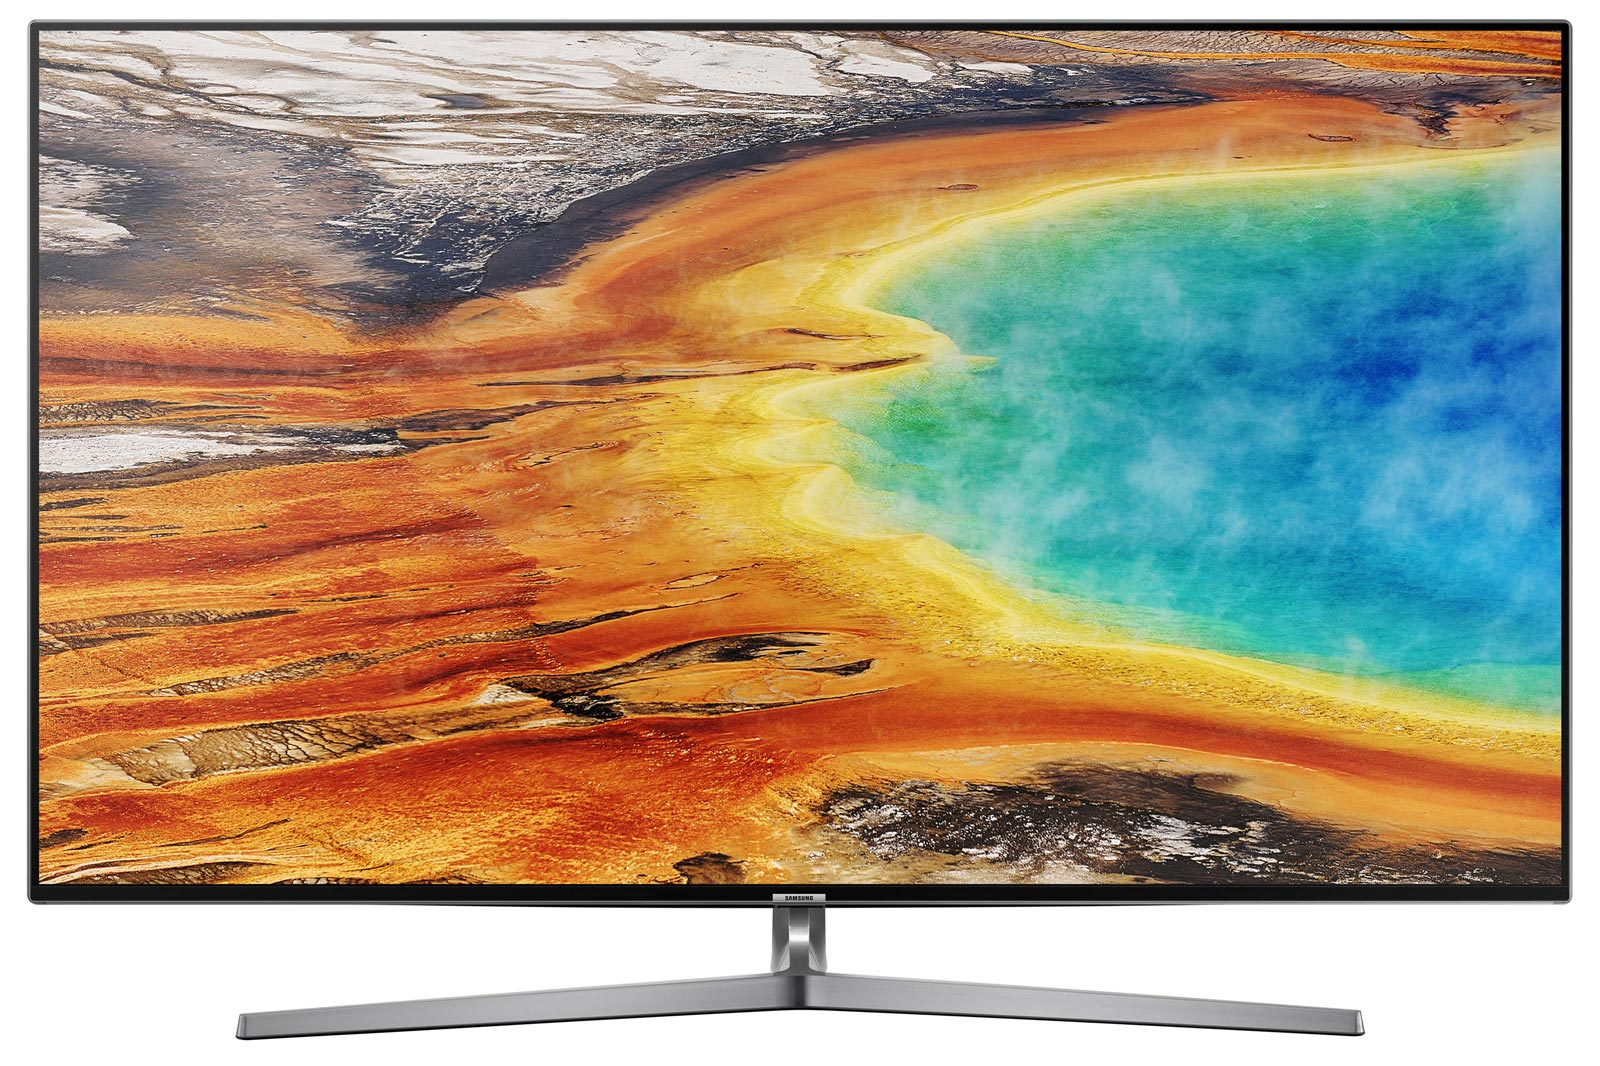 Samsung 2017 Tv Line Up Full Overview With Prices Flatpanelshd 55 Wiring Diagram Free Download Further Smart Mu9